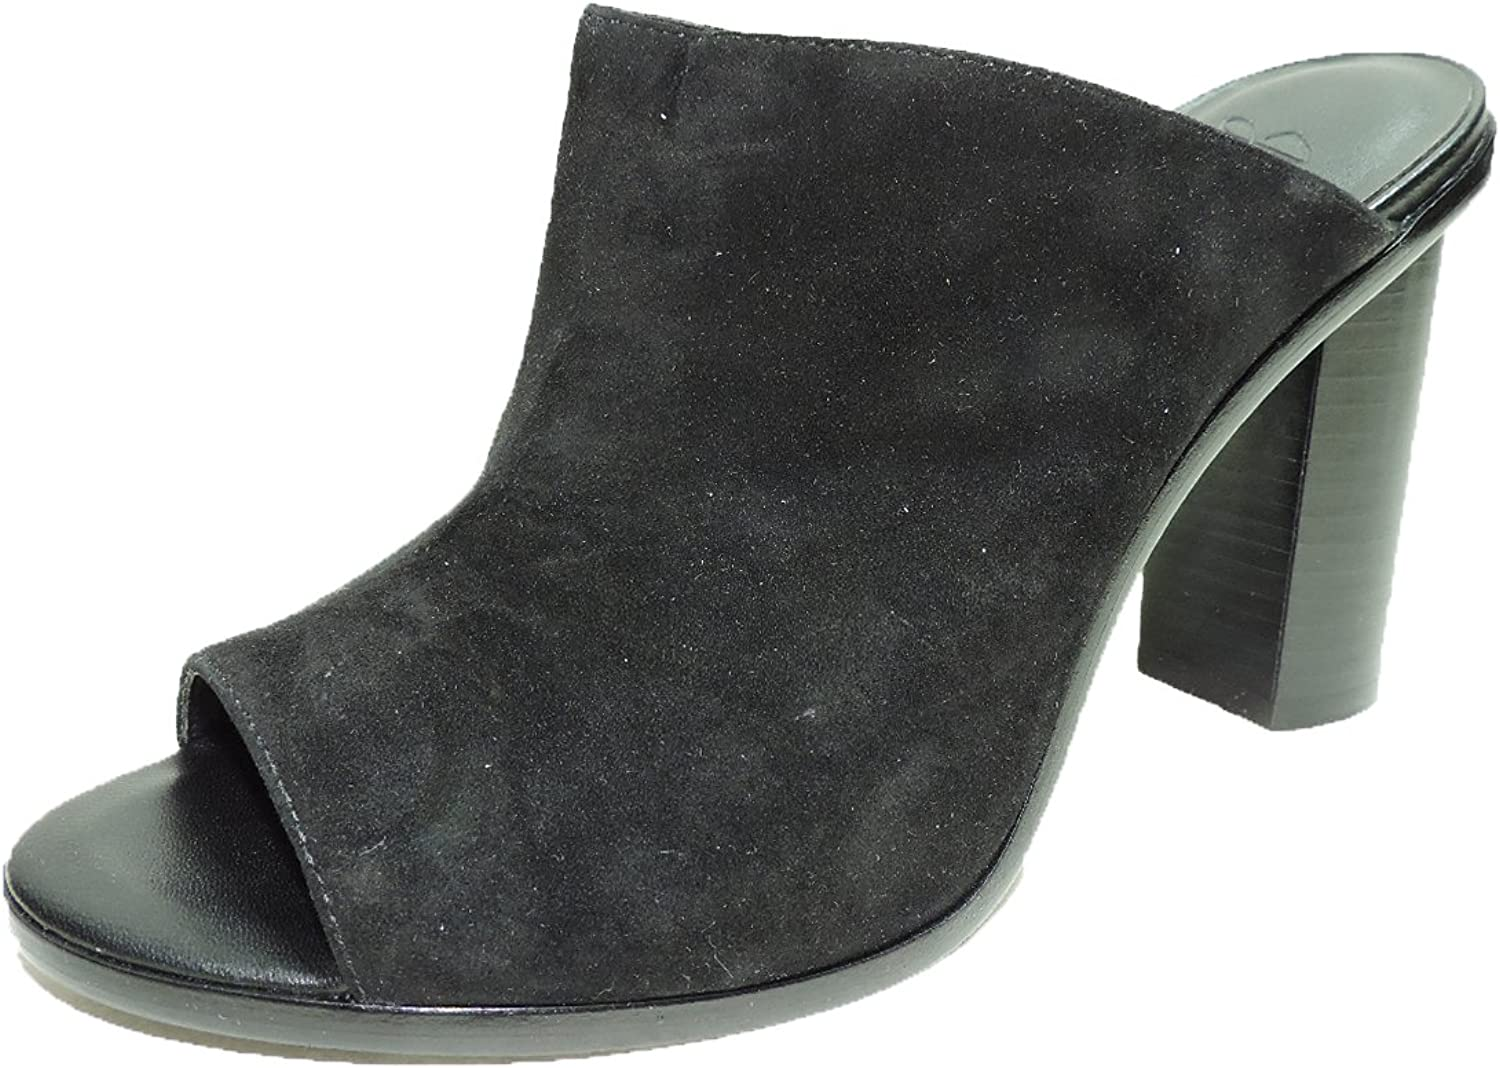 Joie Womens Clement Black Suede 4.5  Heel Mules Heels shoes Size 9 B